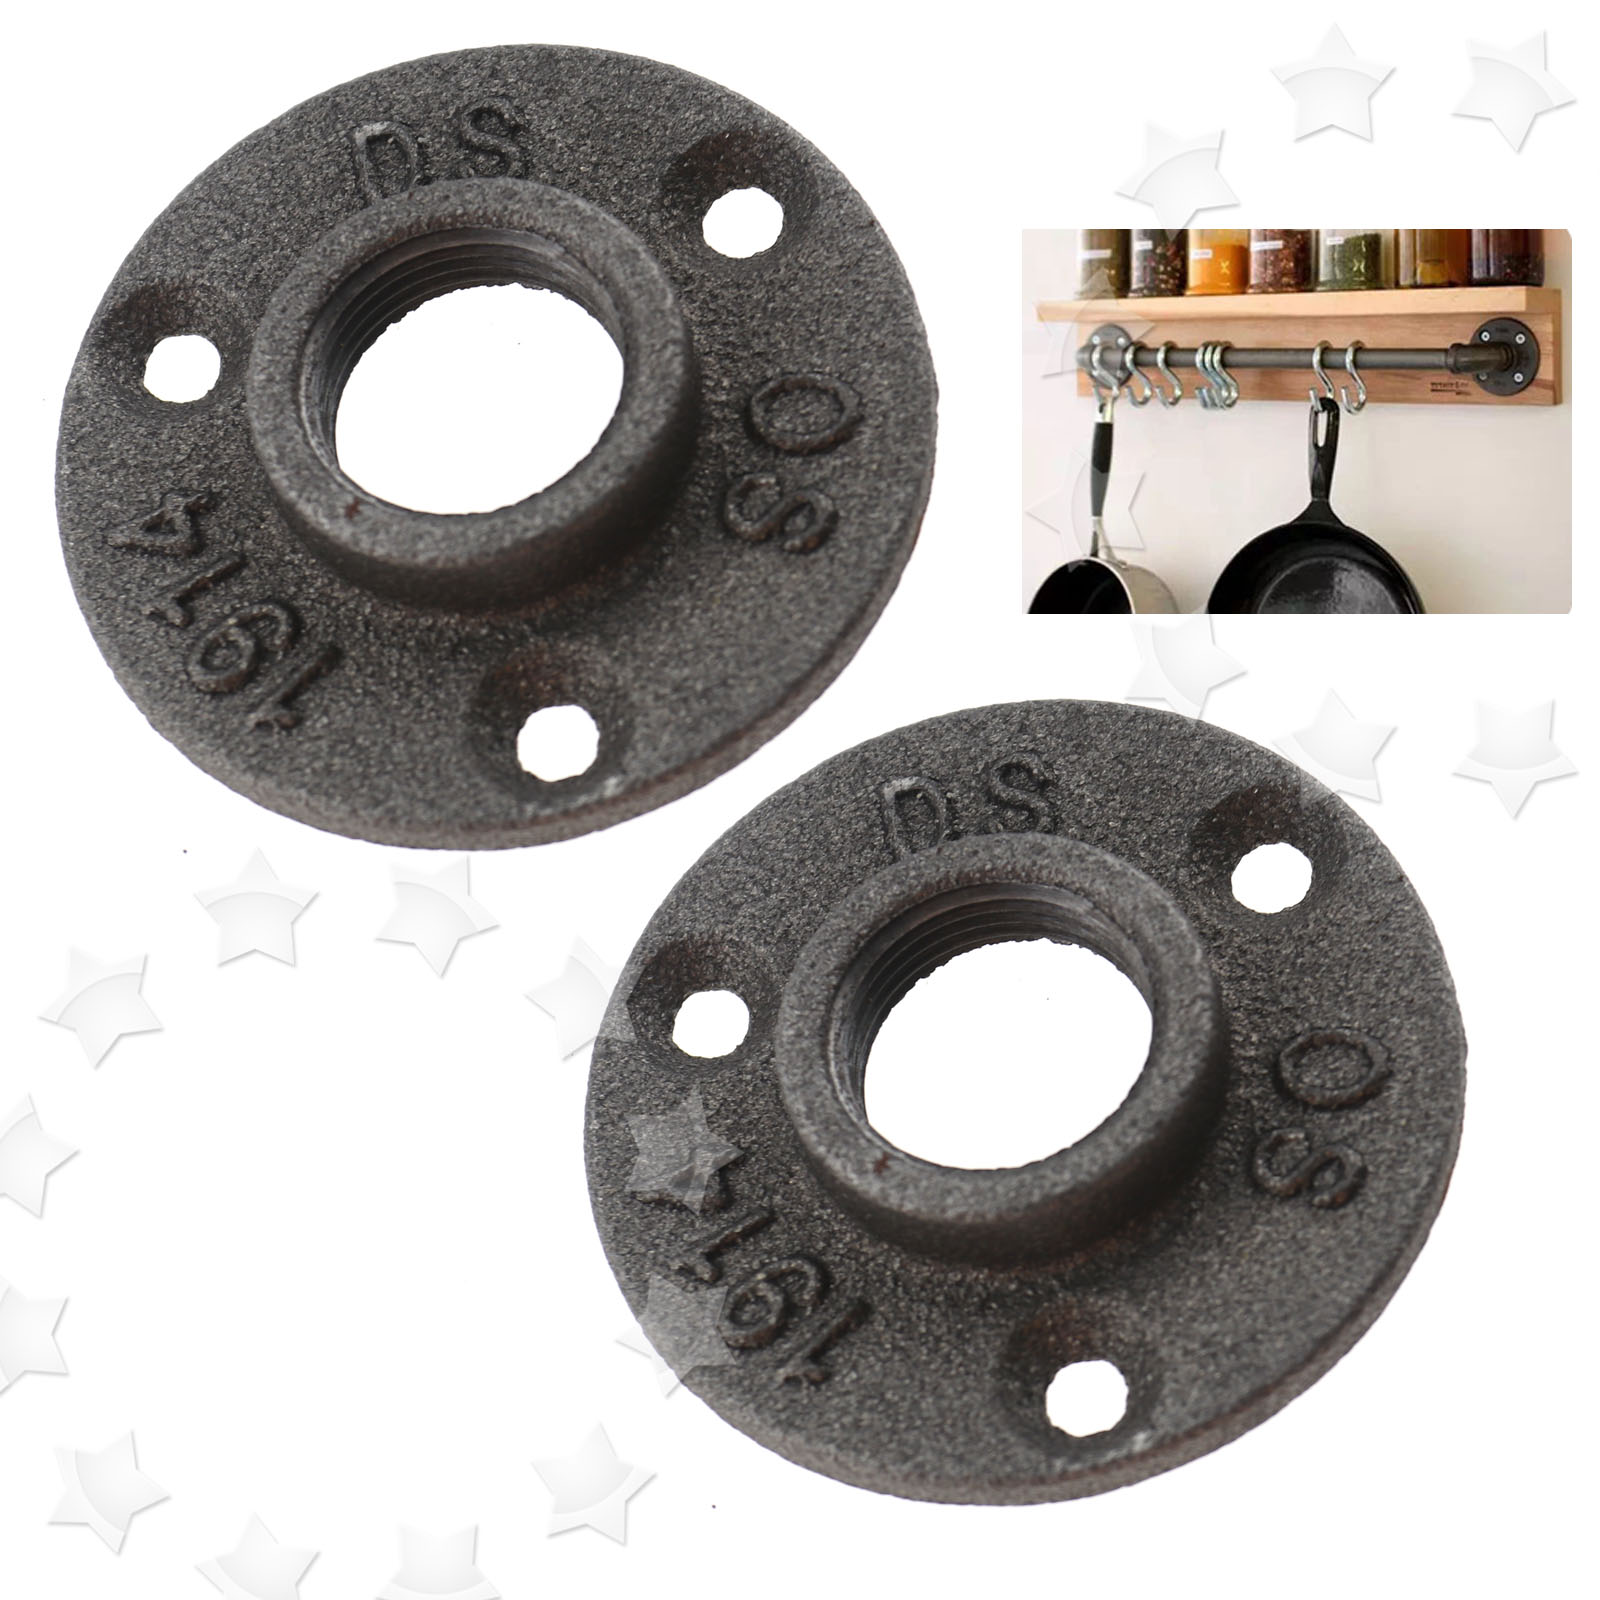 Cast iron pipe fittings floor flange plate wall mount